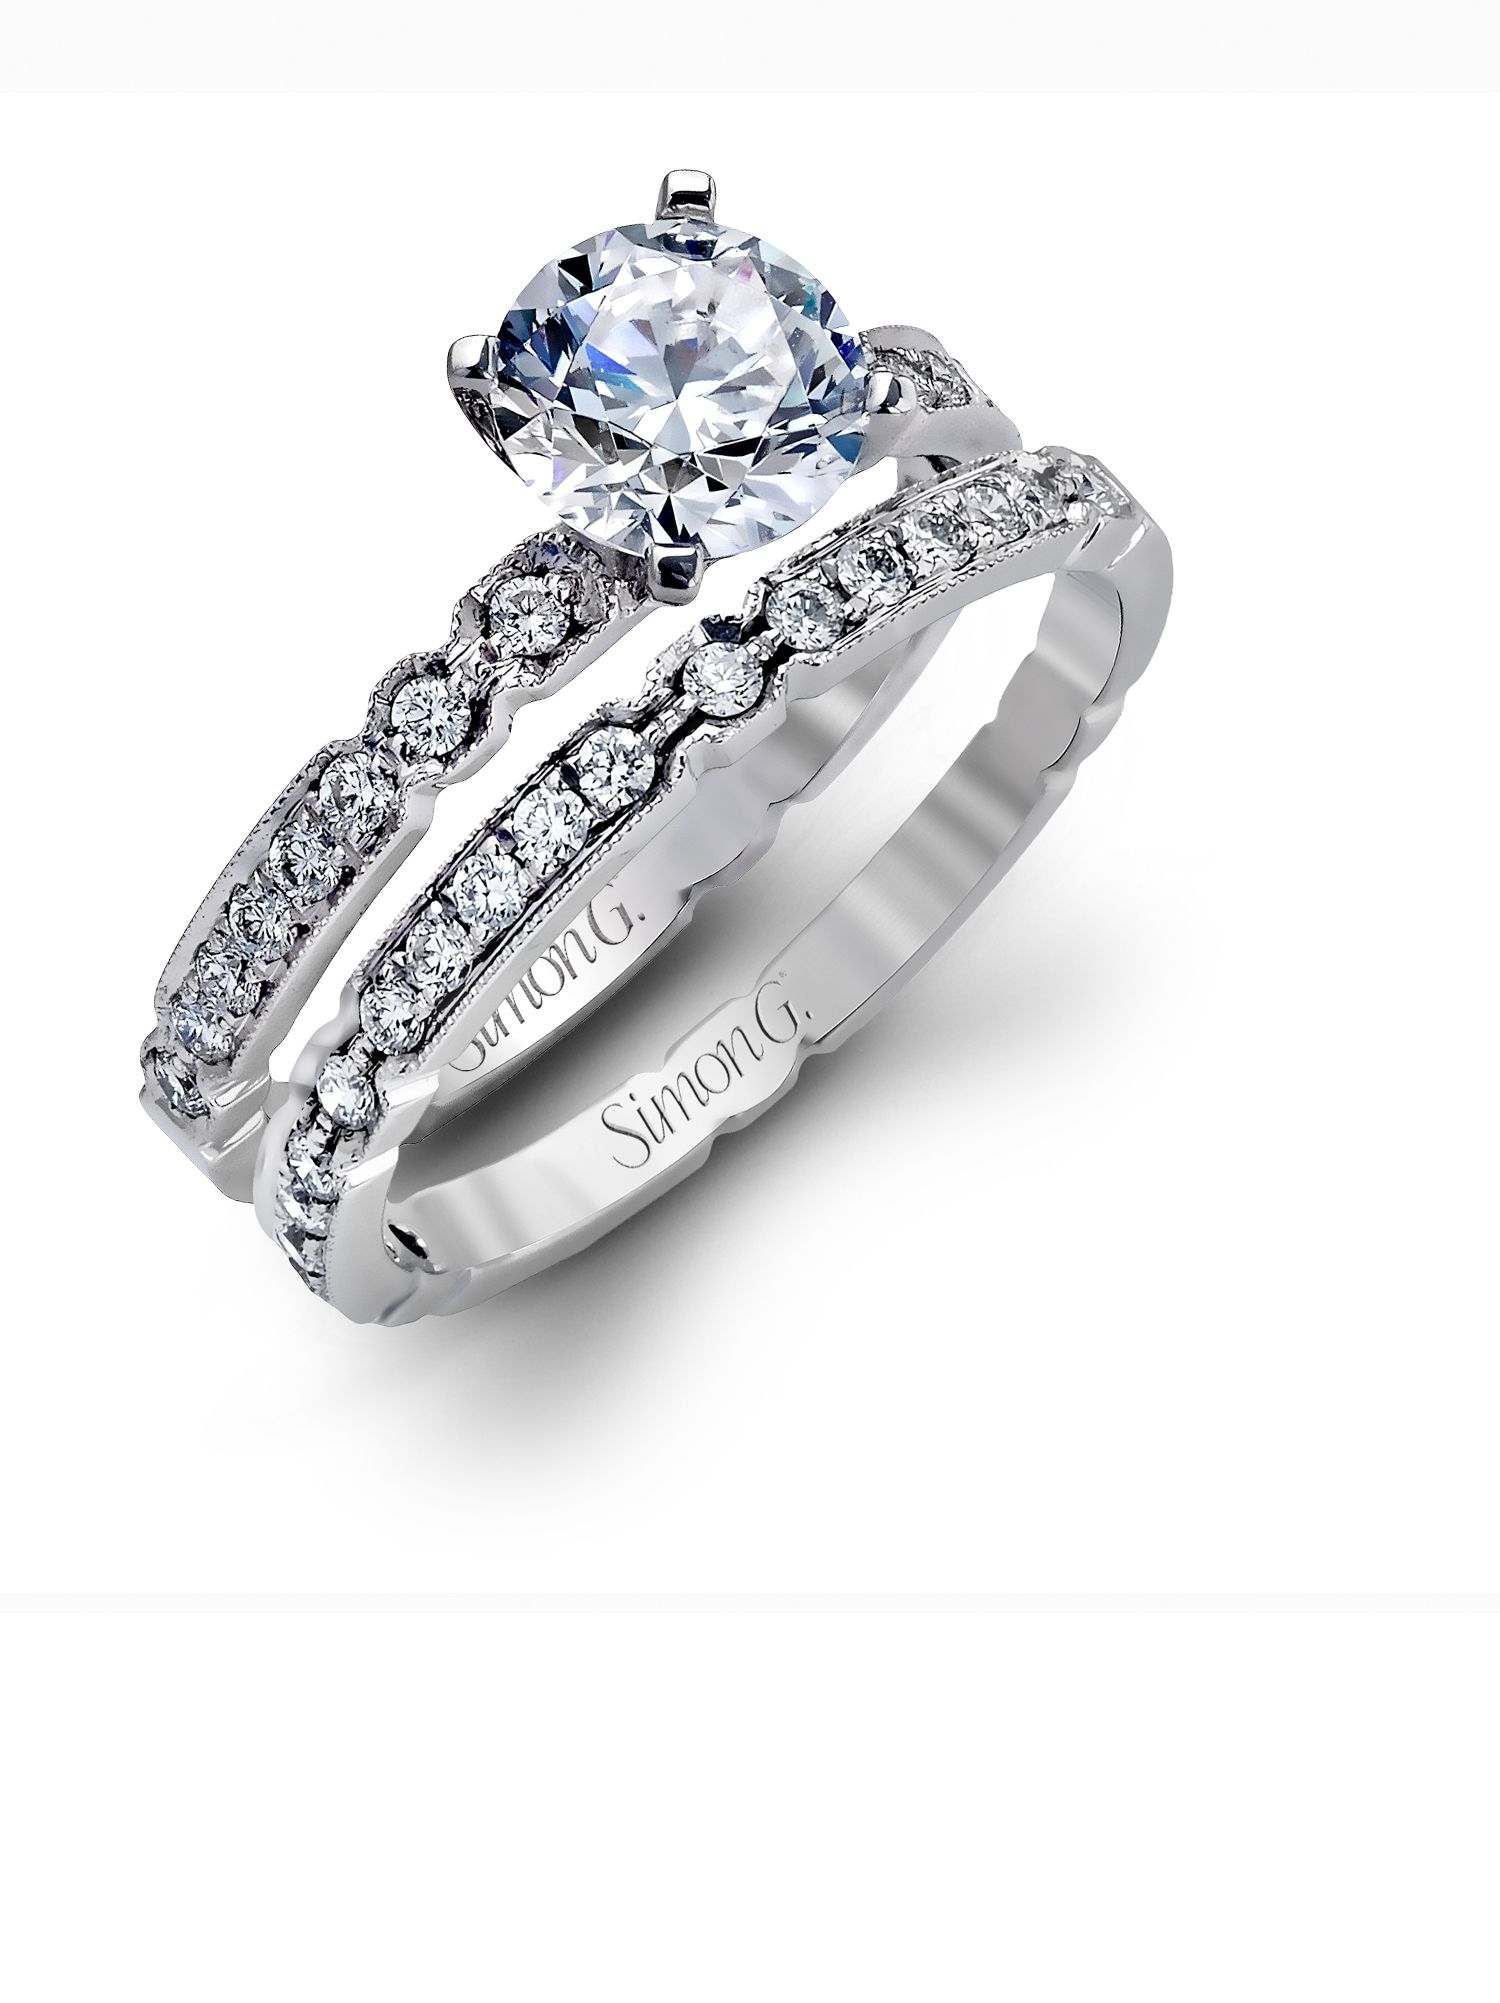 How stunning is this white gold engagement ring and wedding band set